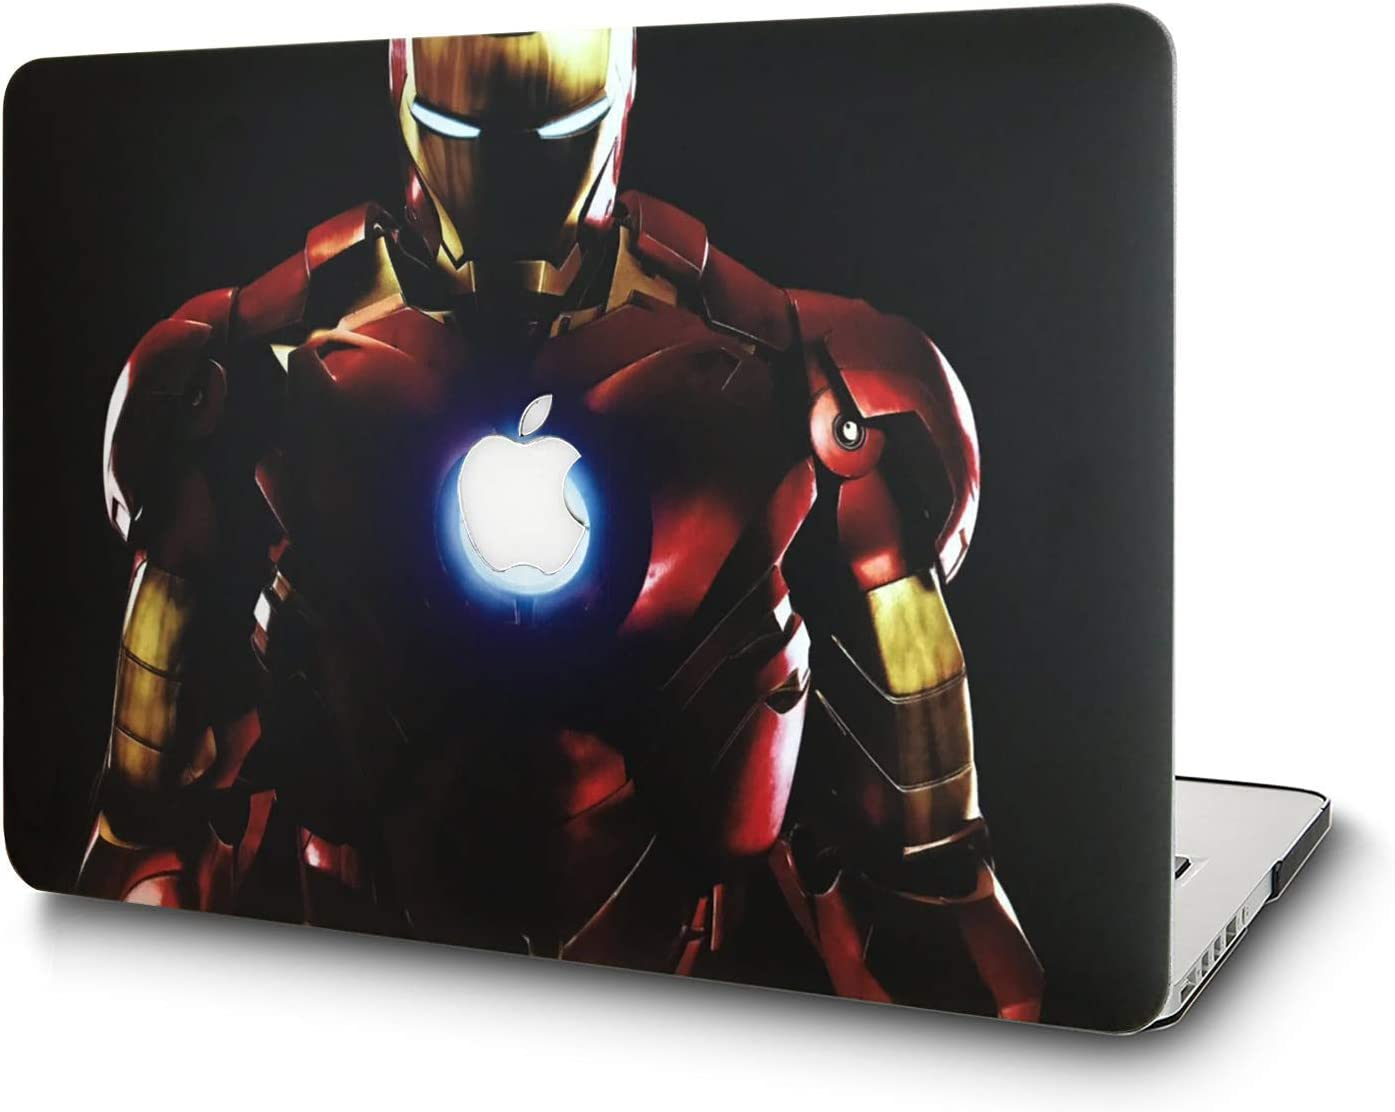 L2W Hard Case for MacBook Air 11.6 Inch Model A1465/A1370 Laptop Computers Accessories Plastic Smooth Print Protective Creative Design Cover Iron Man